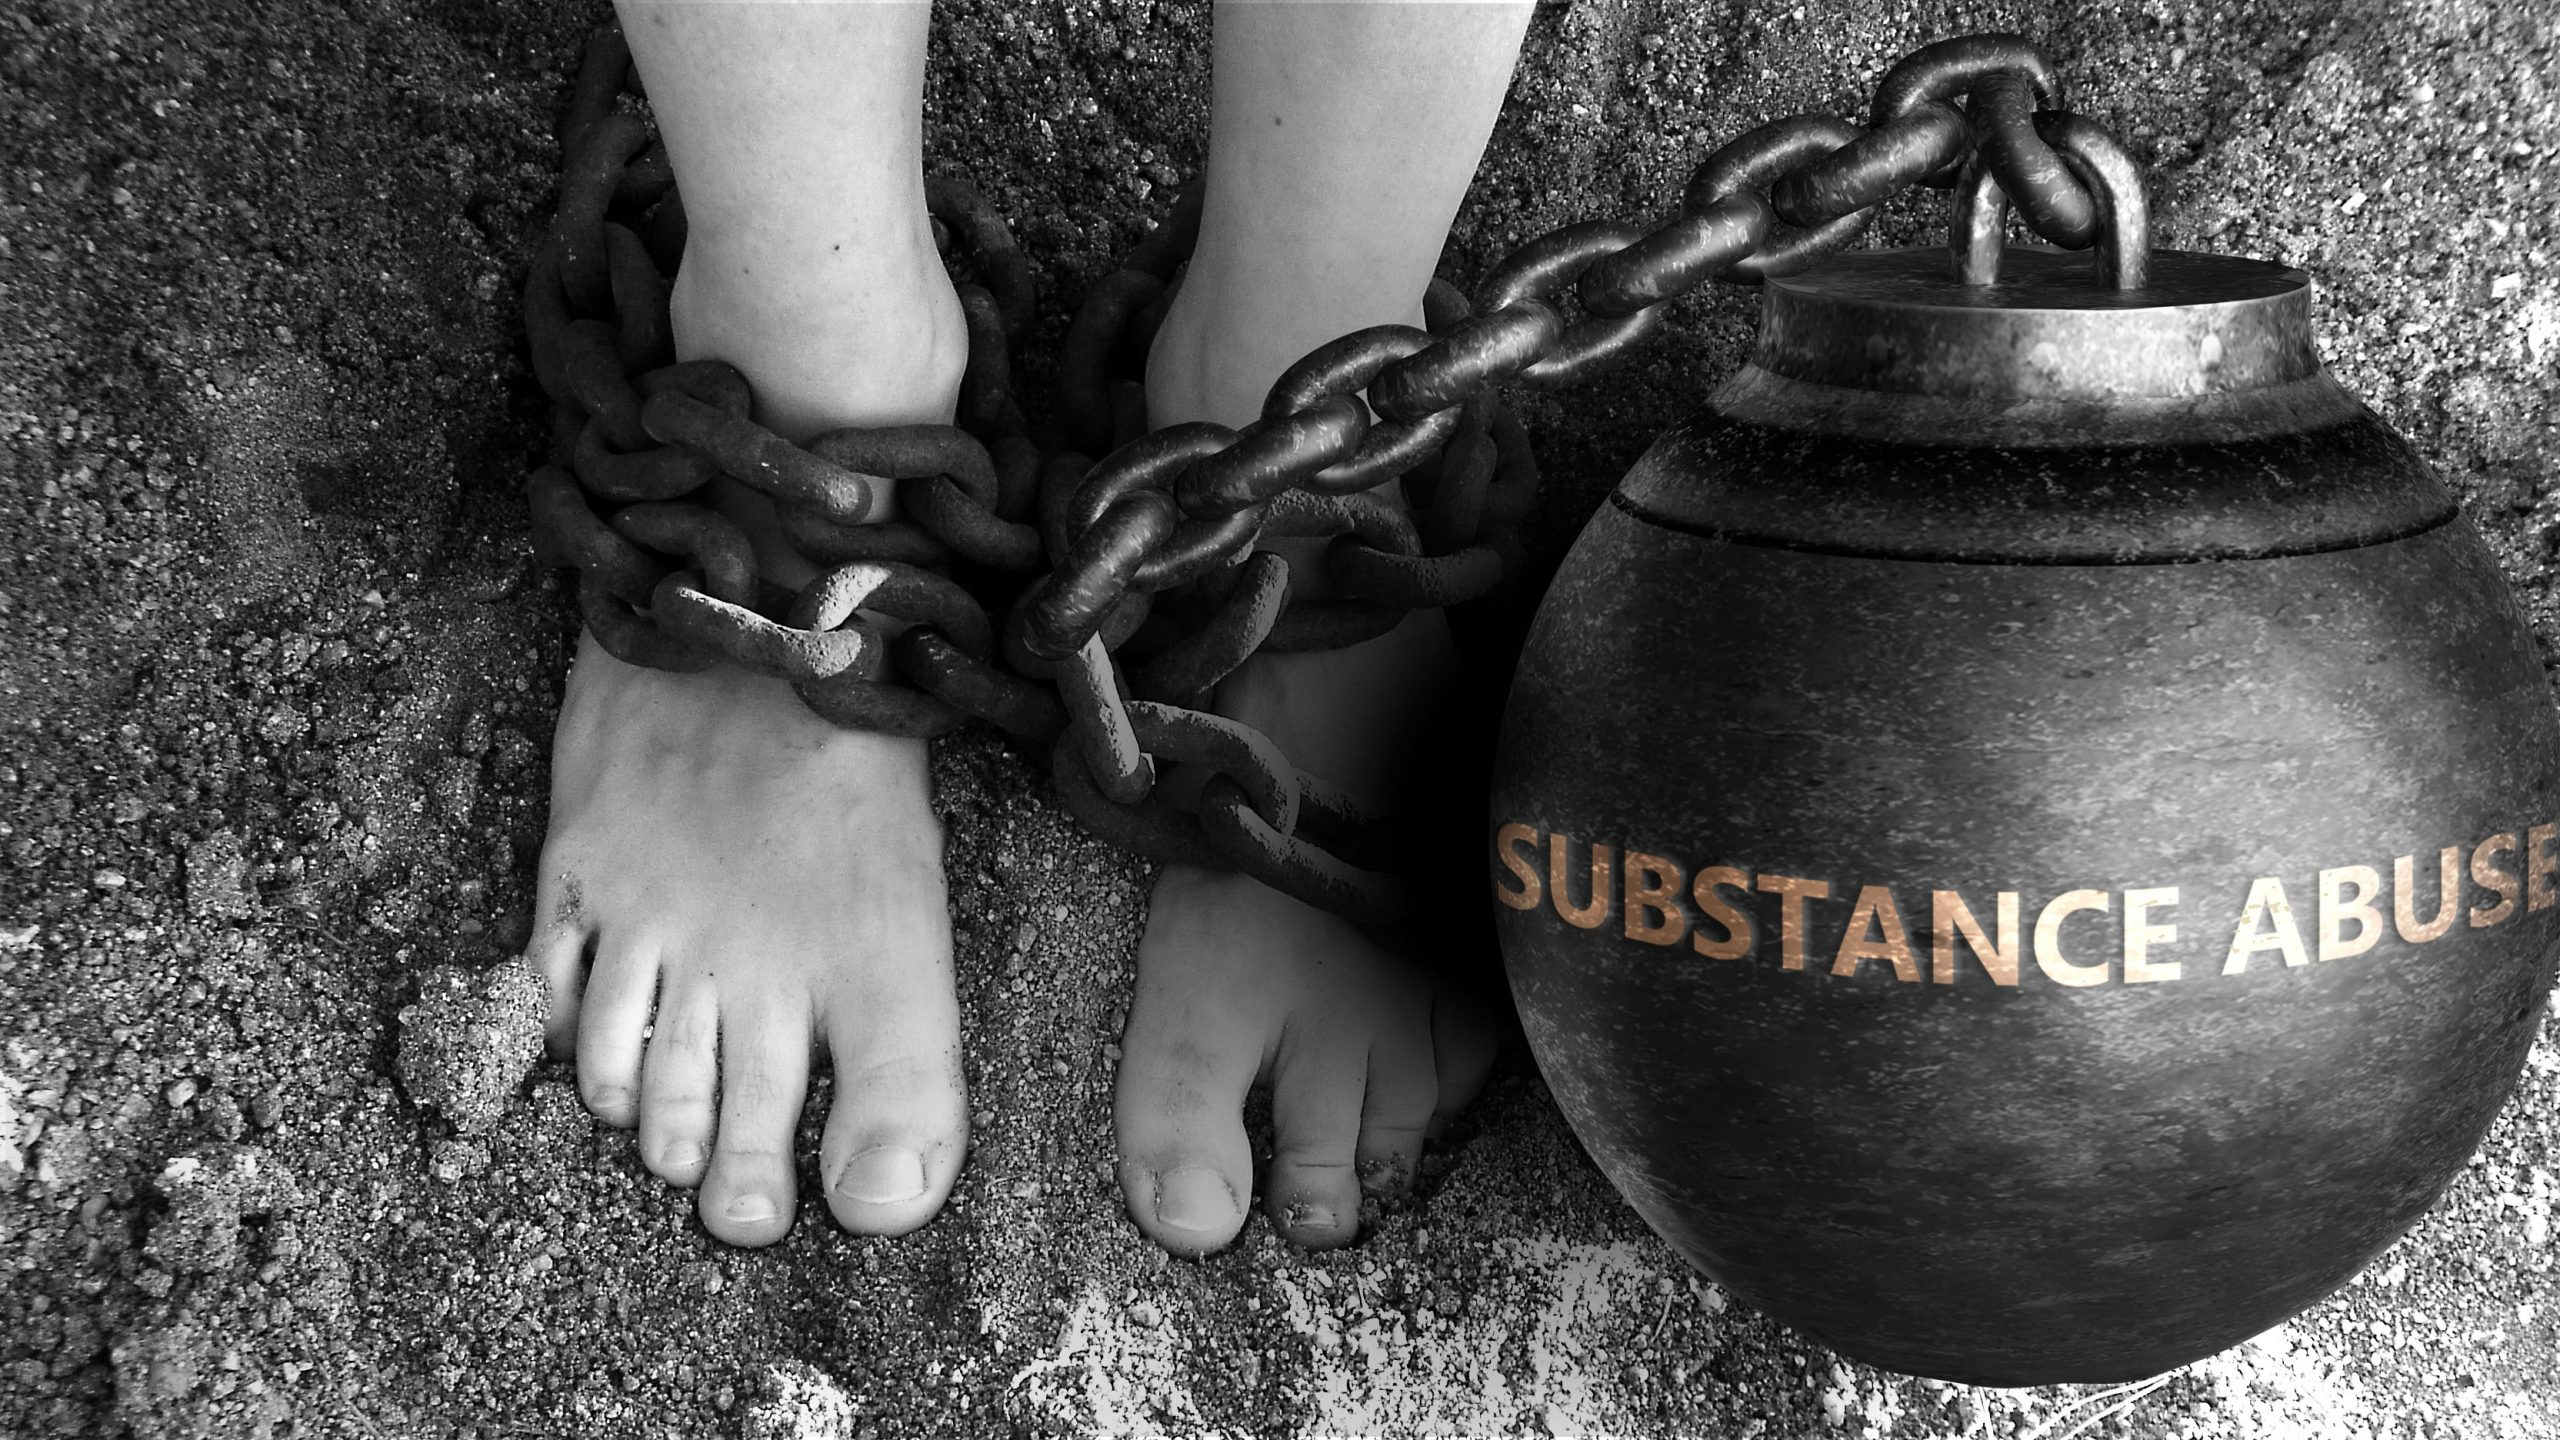 substance abuse labels shouldn't be a ball and chain.